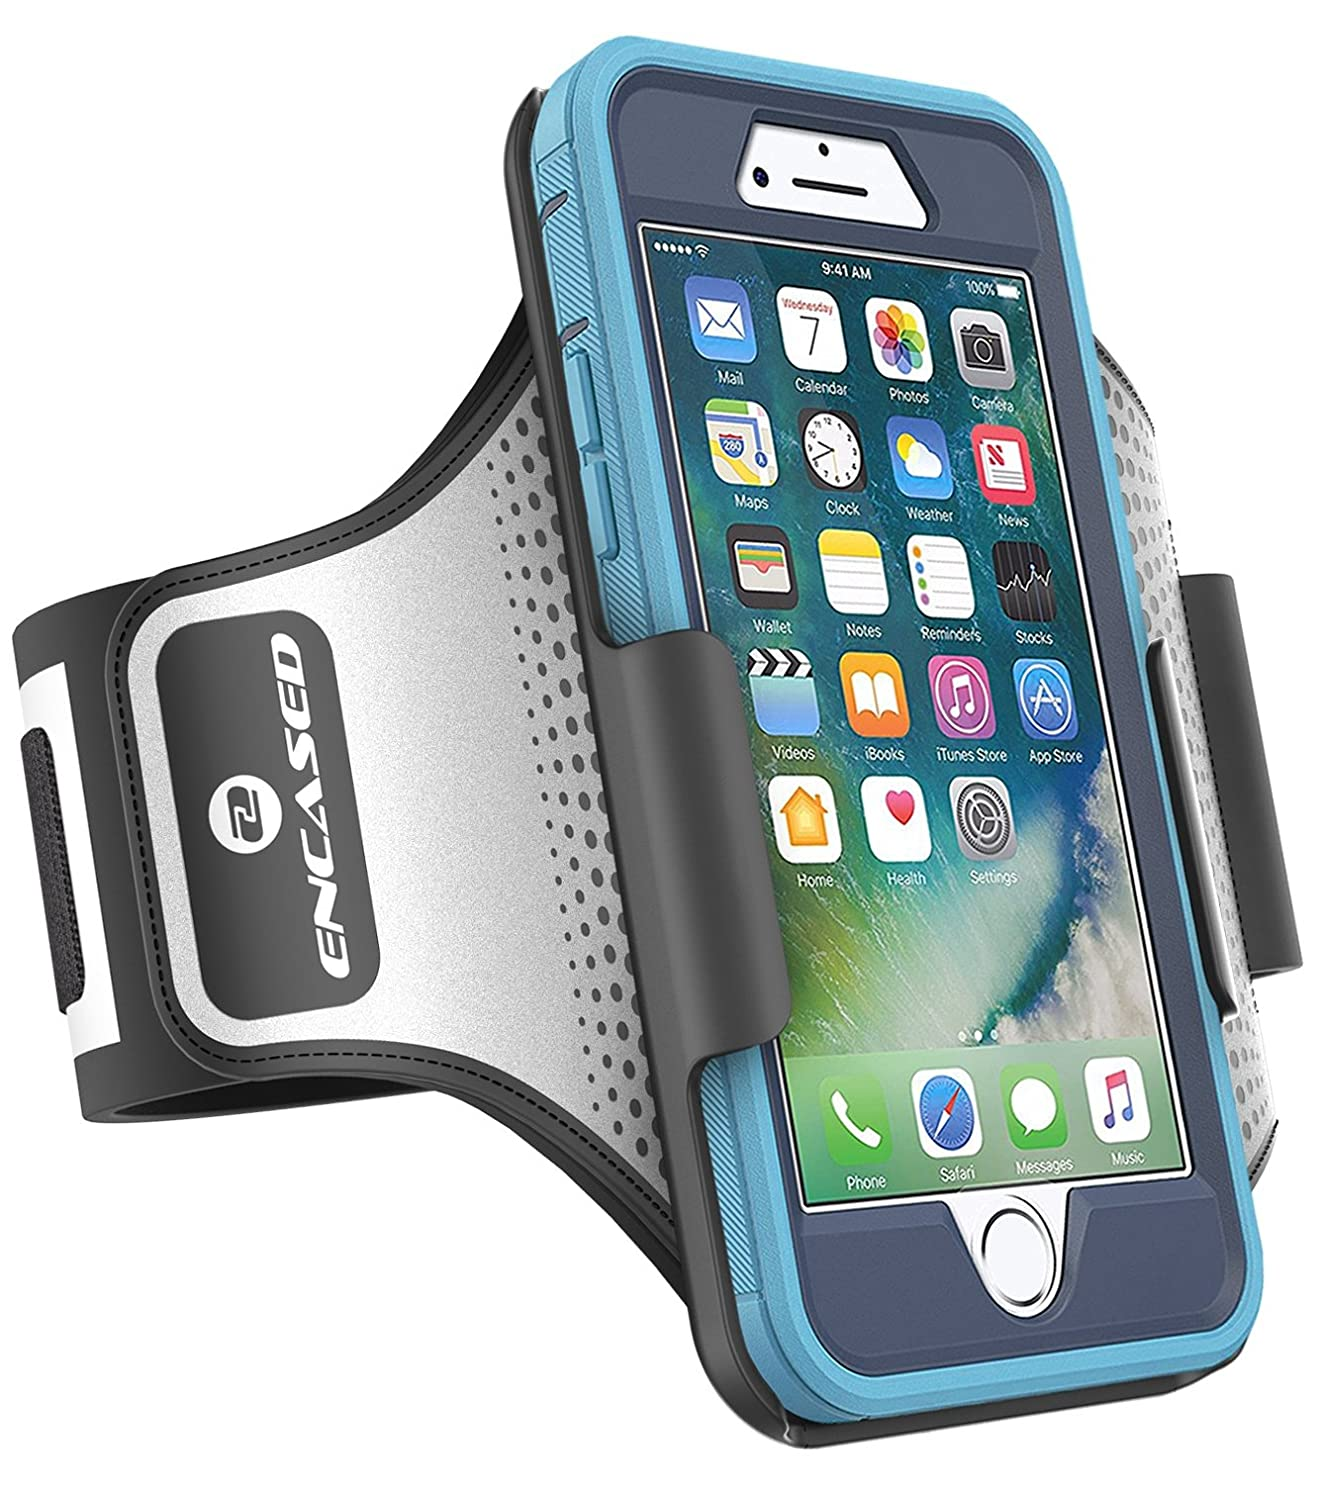 on sale 75ac4 45279 Workout Armband for Otterbox Defender Series - iPhone 6 Plus 5.5